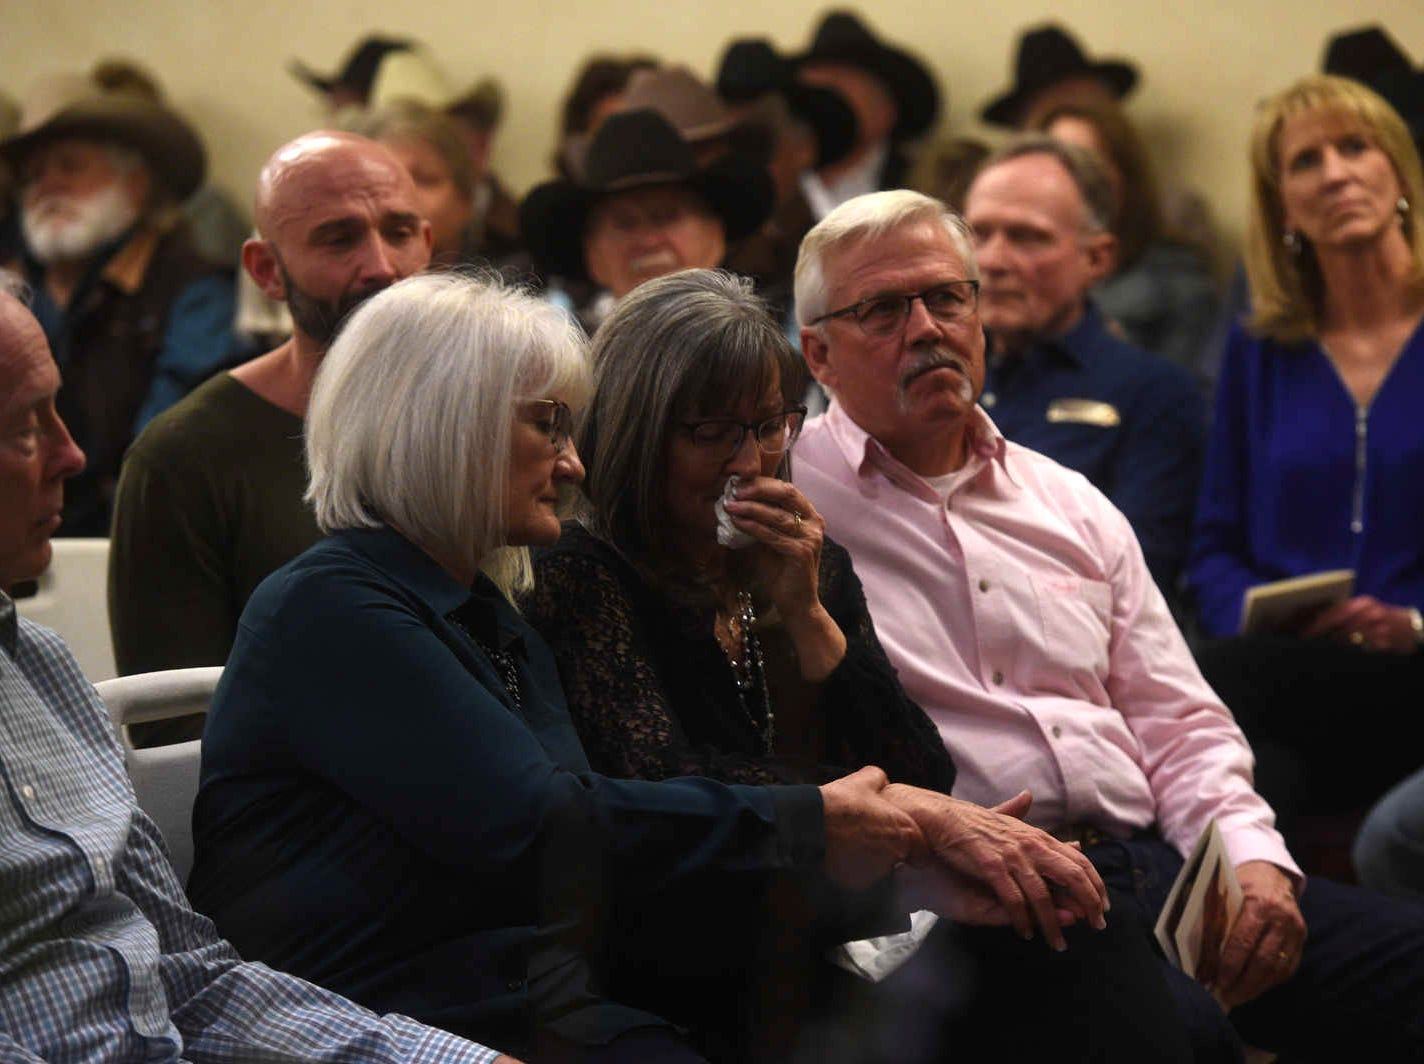 Friends and family gather to pay their respects during a memorial service for Jerry and Sherri David at the Reno Elks Lodge on Feb. 1, 2019.